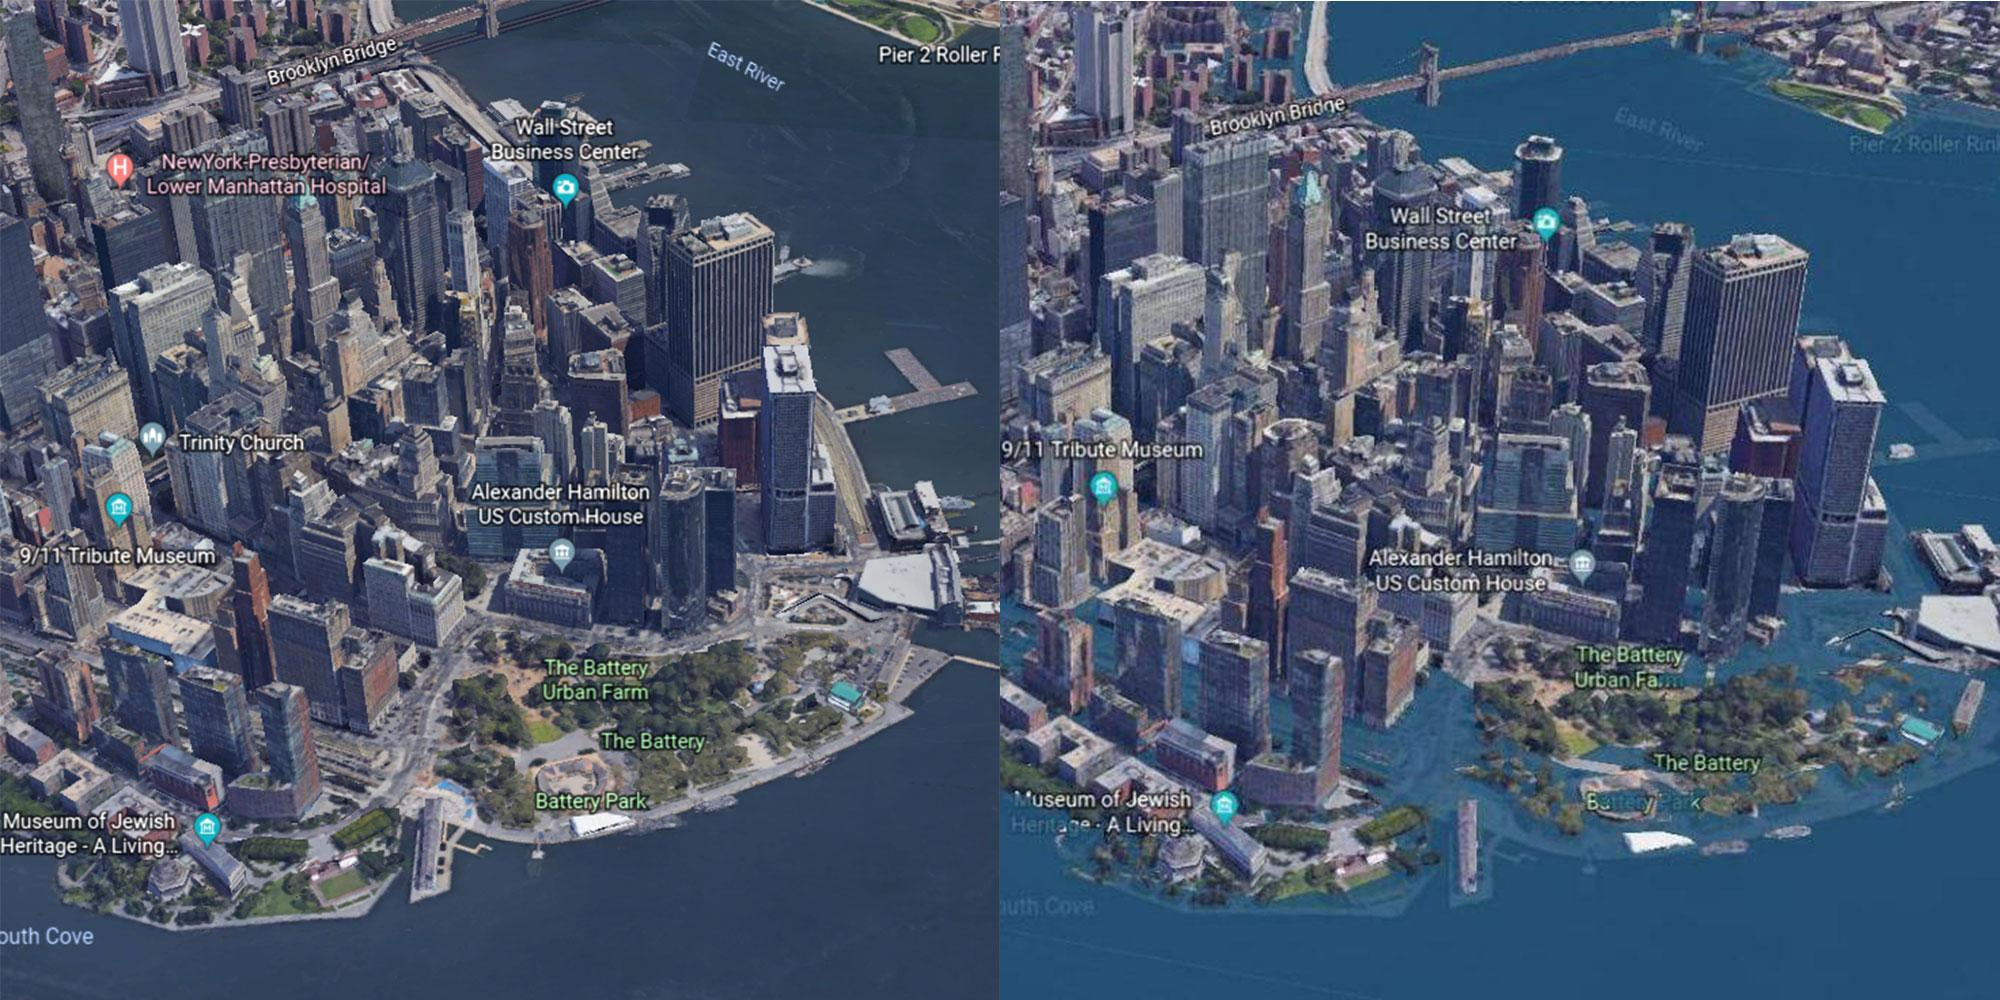 These before-and-after maps reveal how devastating climate change could be in the future